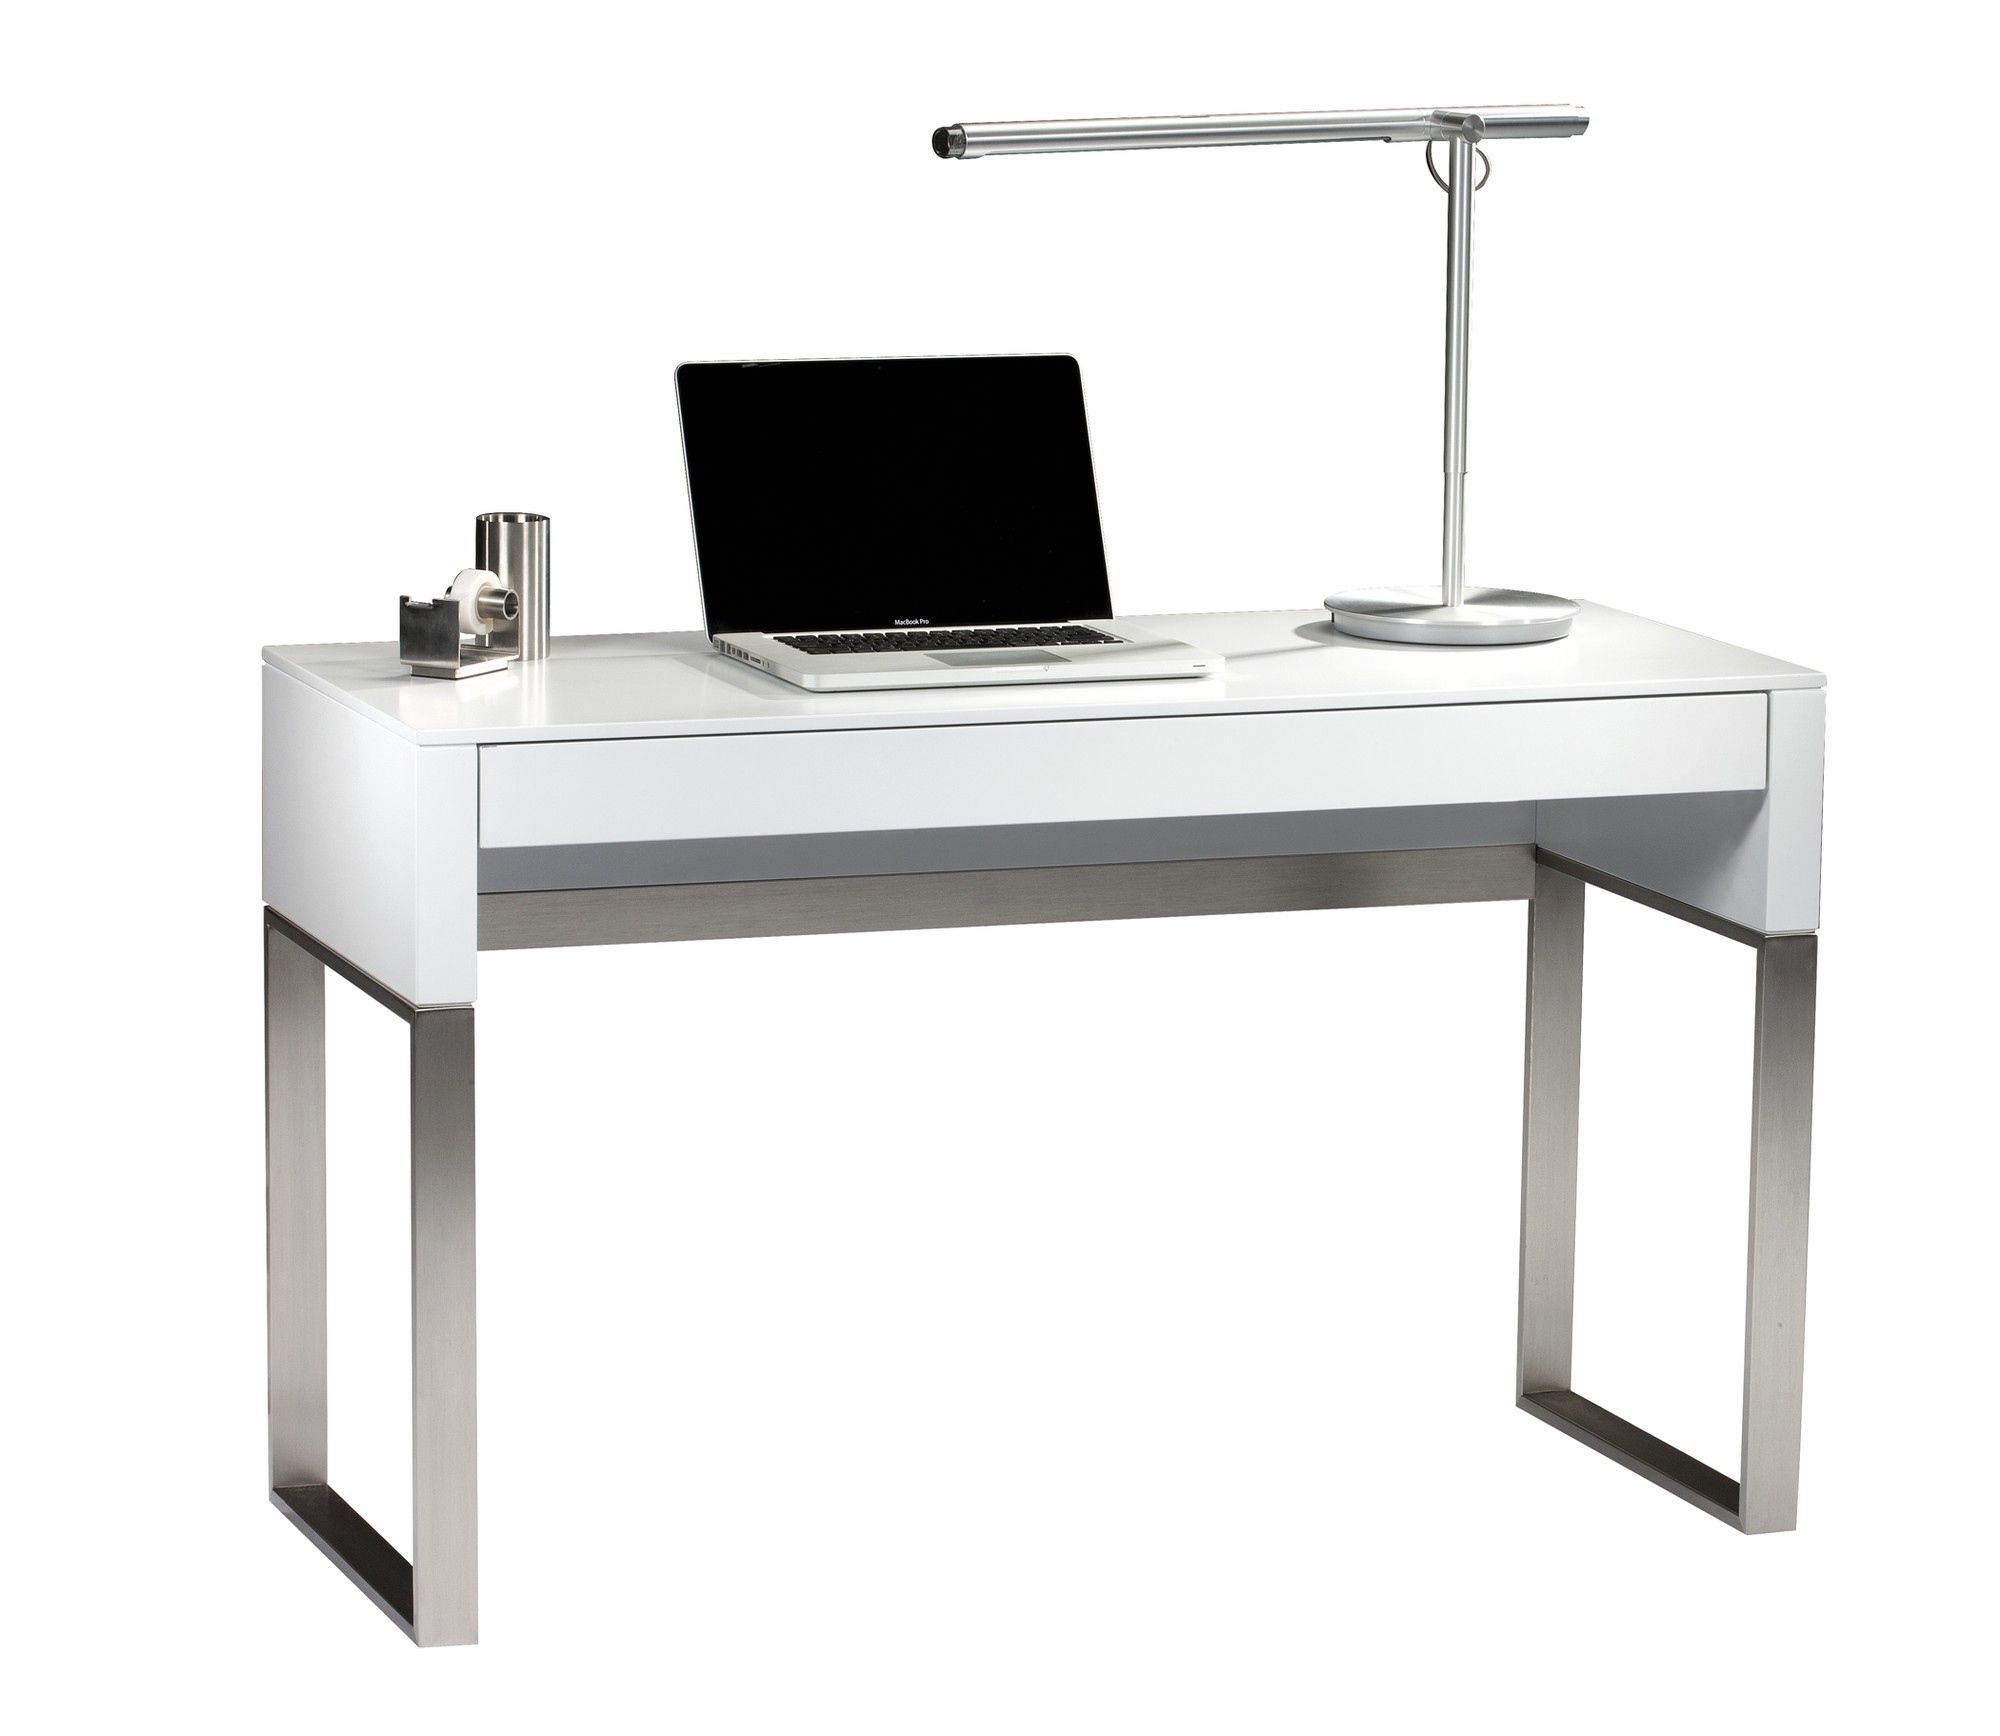 unique design your for be study art desk of home a new way bedroom kids luxury how to tall standing sale awesome should